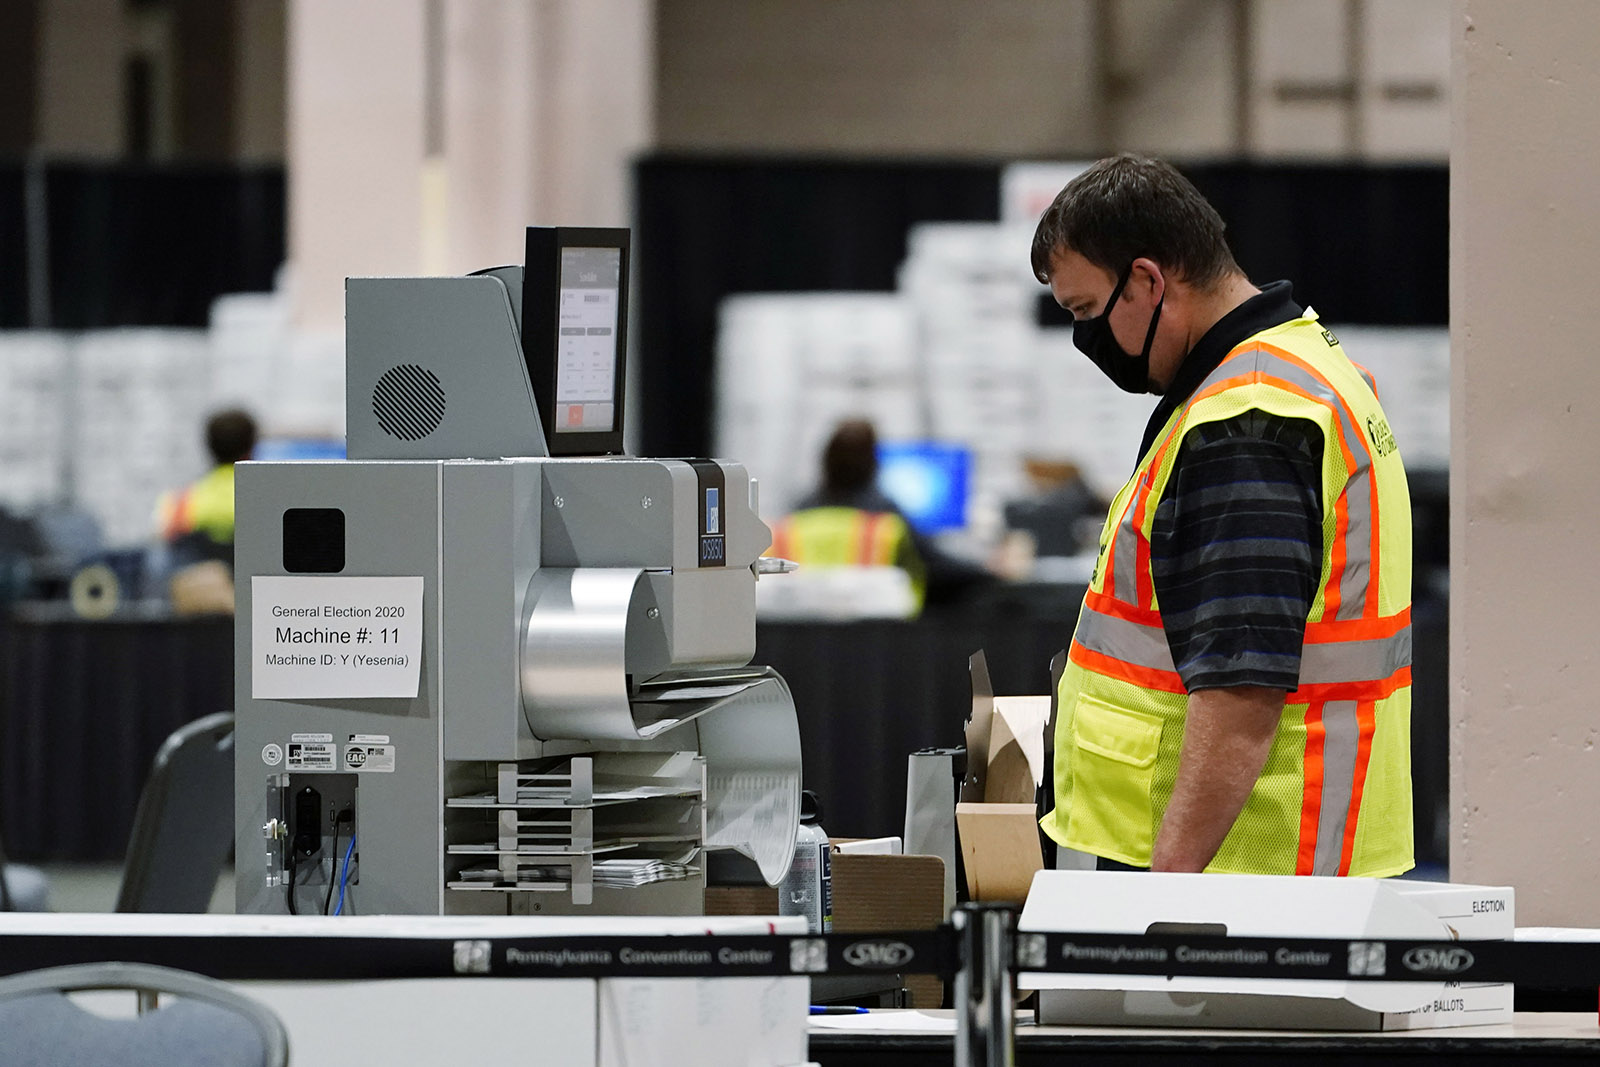 A Philadelphia election worker scans ballots for the 2020 general election in the United States at the Pennsylvania Convention Center, on Tuesday in Philadelphia.